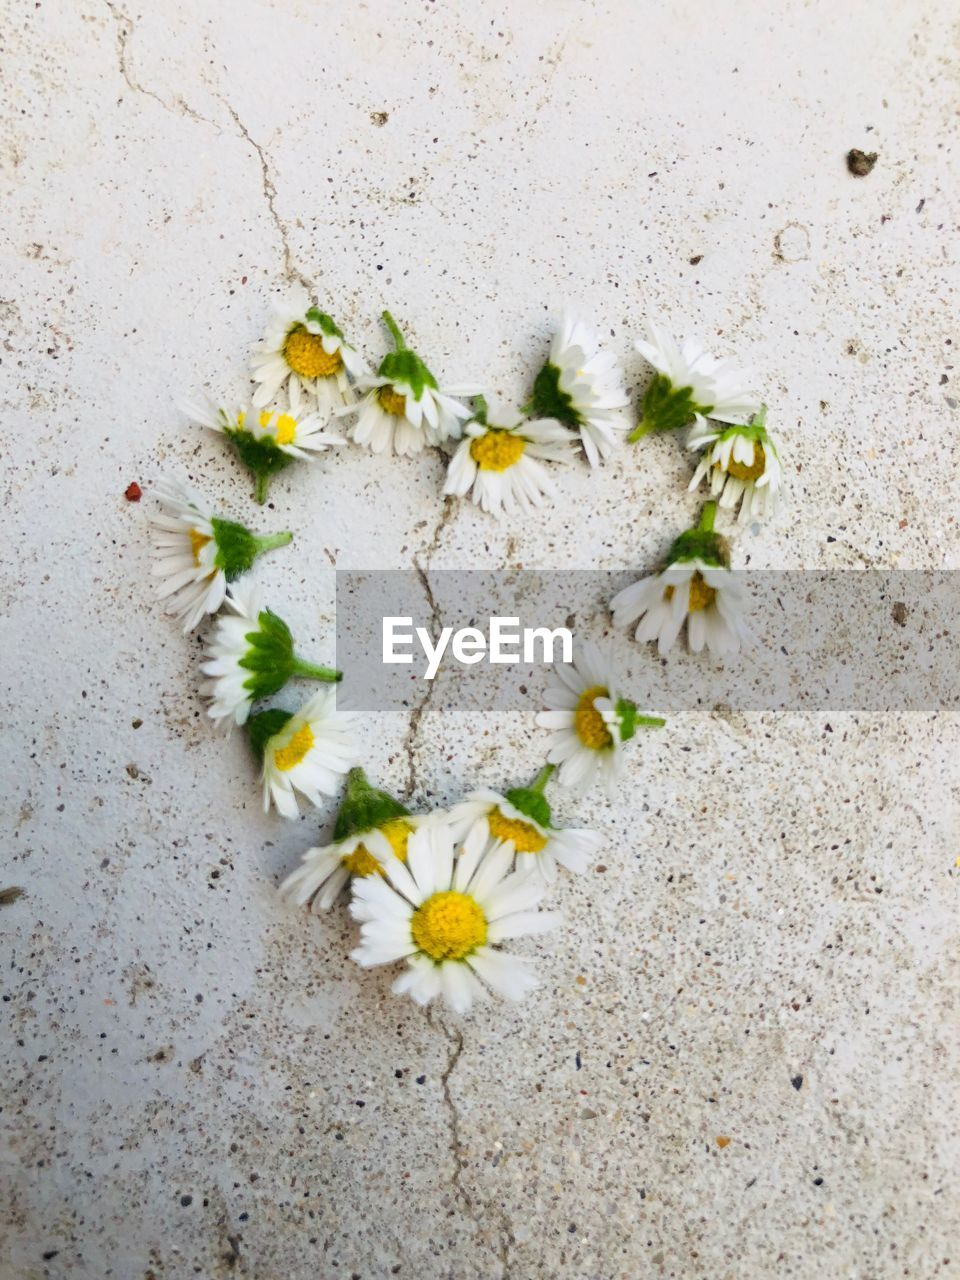 flower, flowering plant, plant, freshness, fragility, nature, vulnerability, no people, beauty in nature, growth, petal, close-up, day, high angle view, white color, outdoors, flower head, directly above, inflorescence, beauty, bright